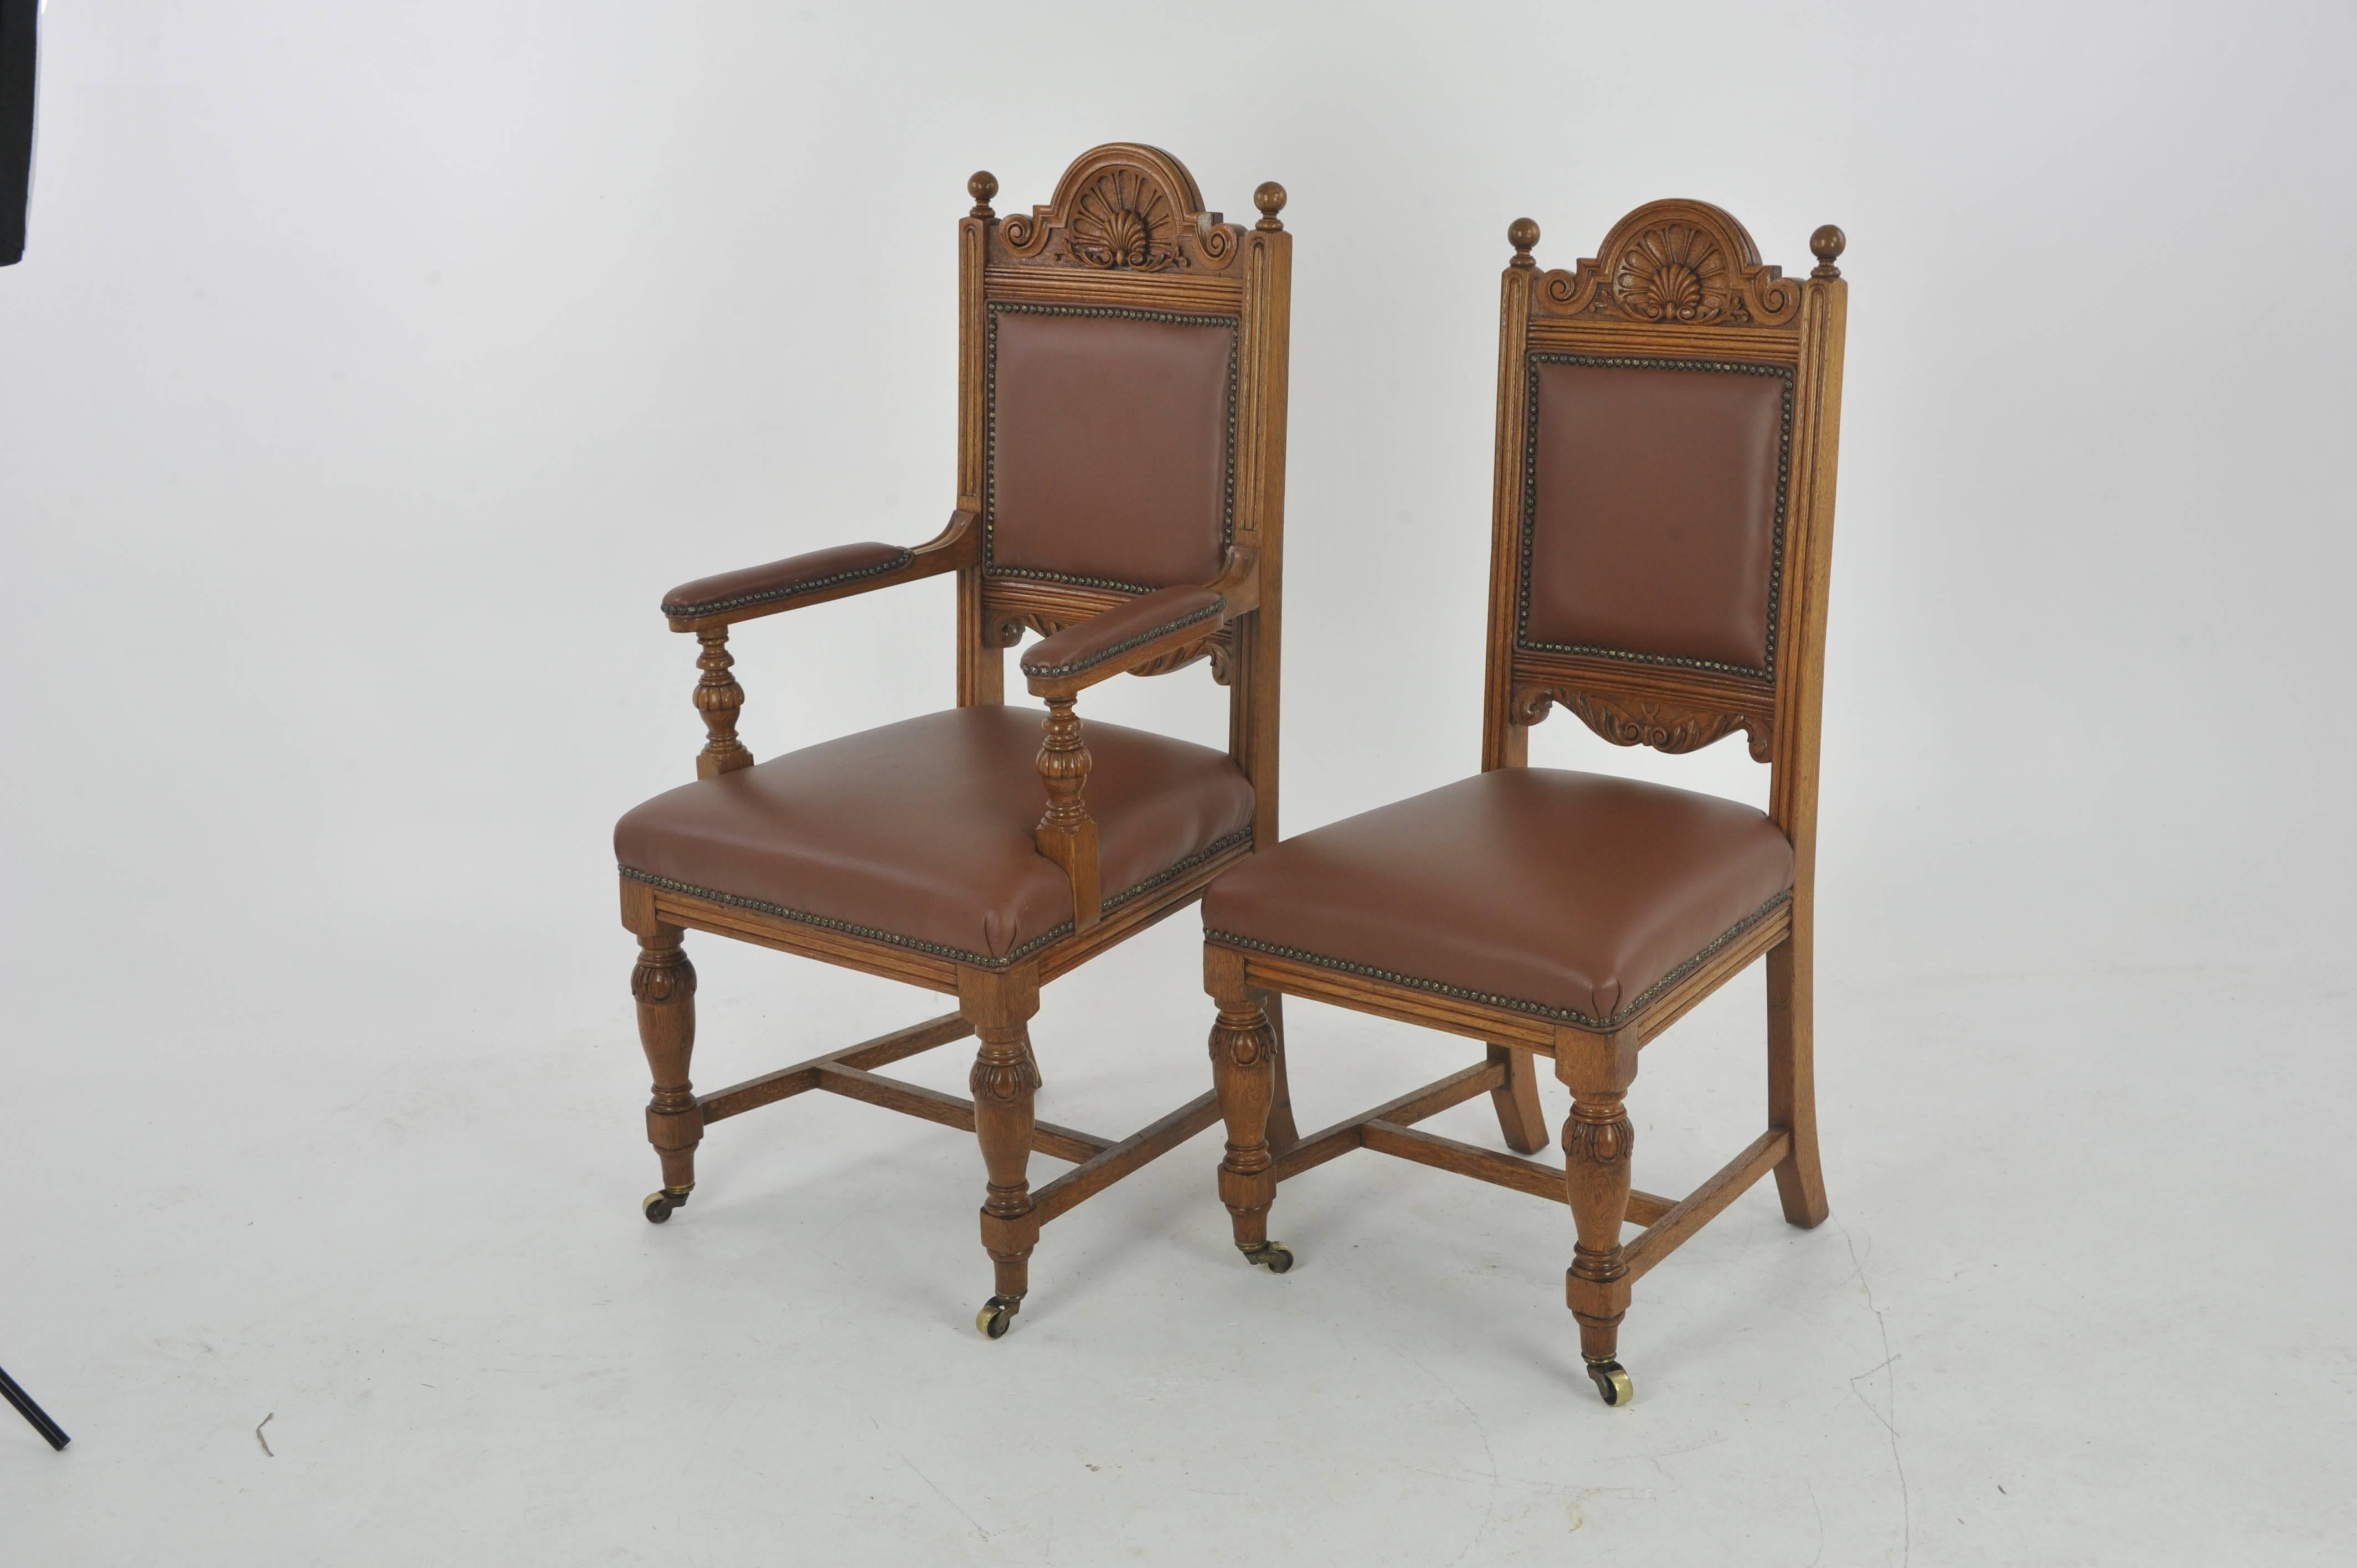 Antique dining chairs carved oak six chairs (5+1) Scotland & Antique Dining Chairs Carved Oak Six Chairs Scotland 1880 at 1stdibs